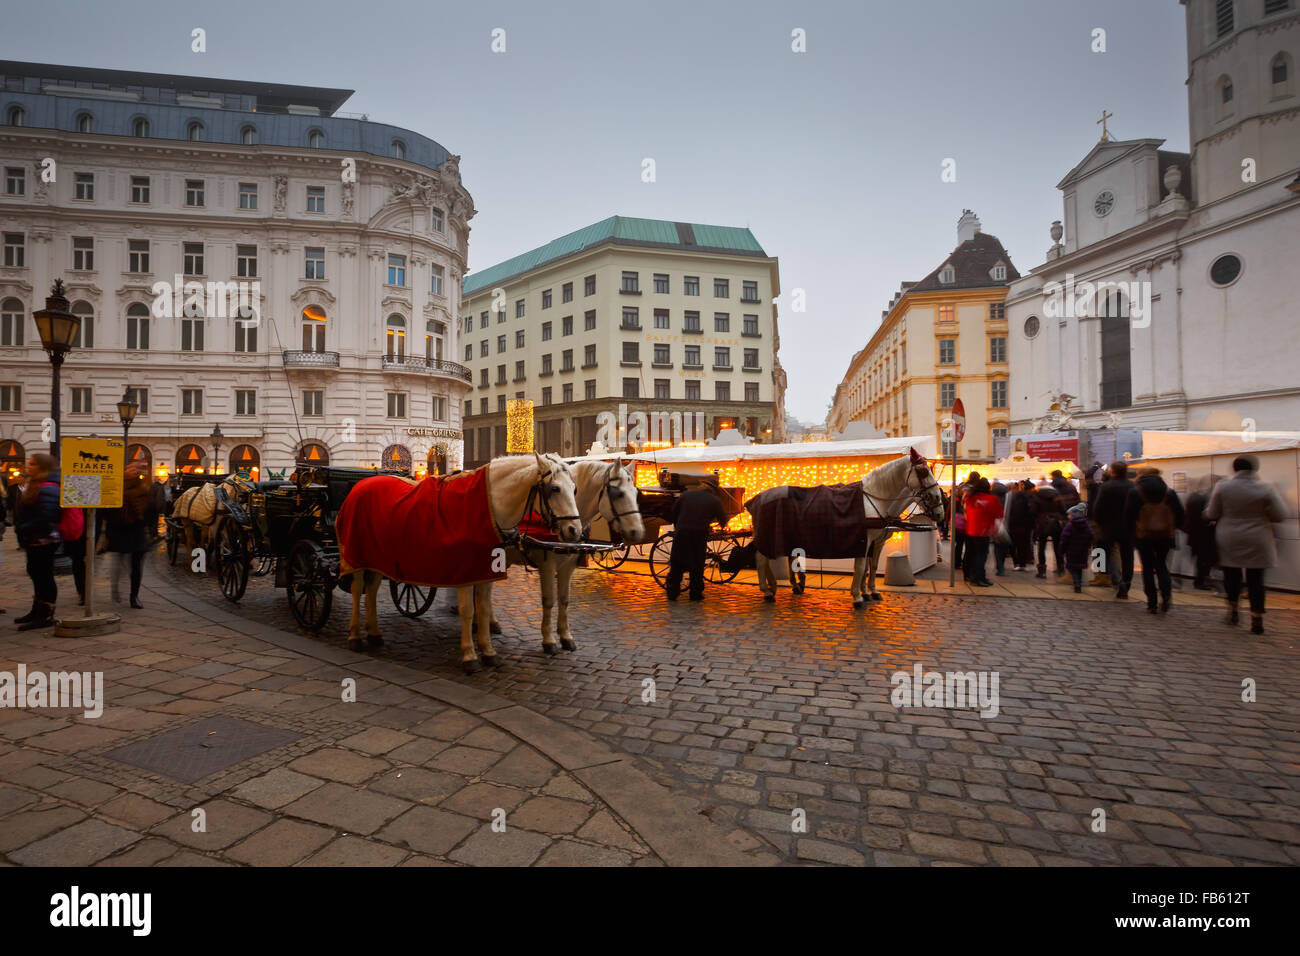 Carriages in front of the Hofburg palace in Vienna. - Stock Image